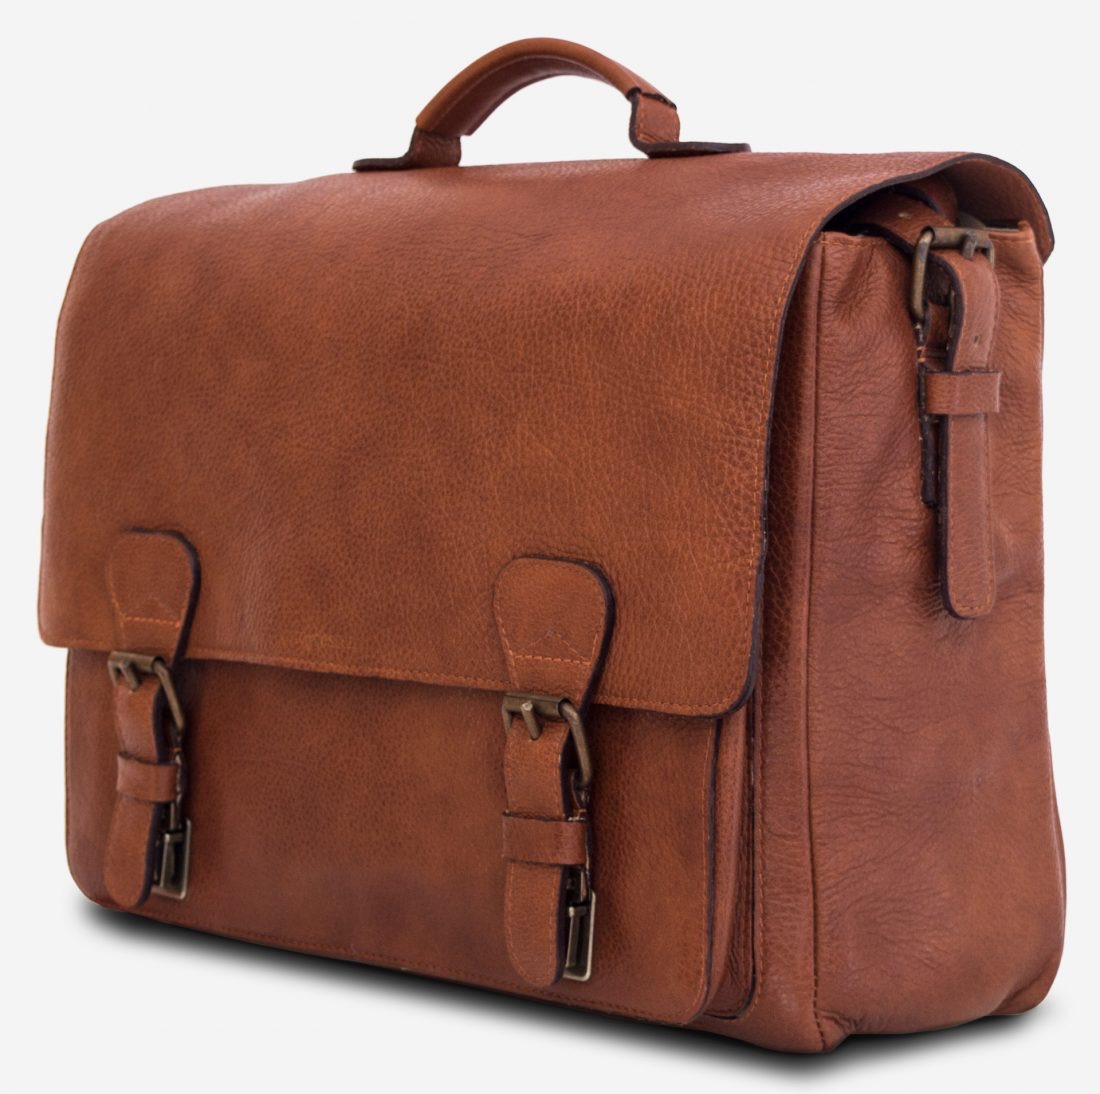 "Side view of the 15"" soft brown leather satchel briefcase."